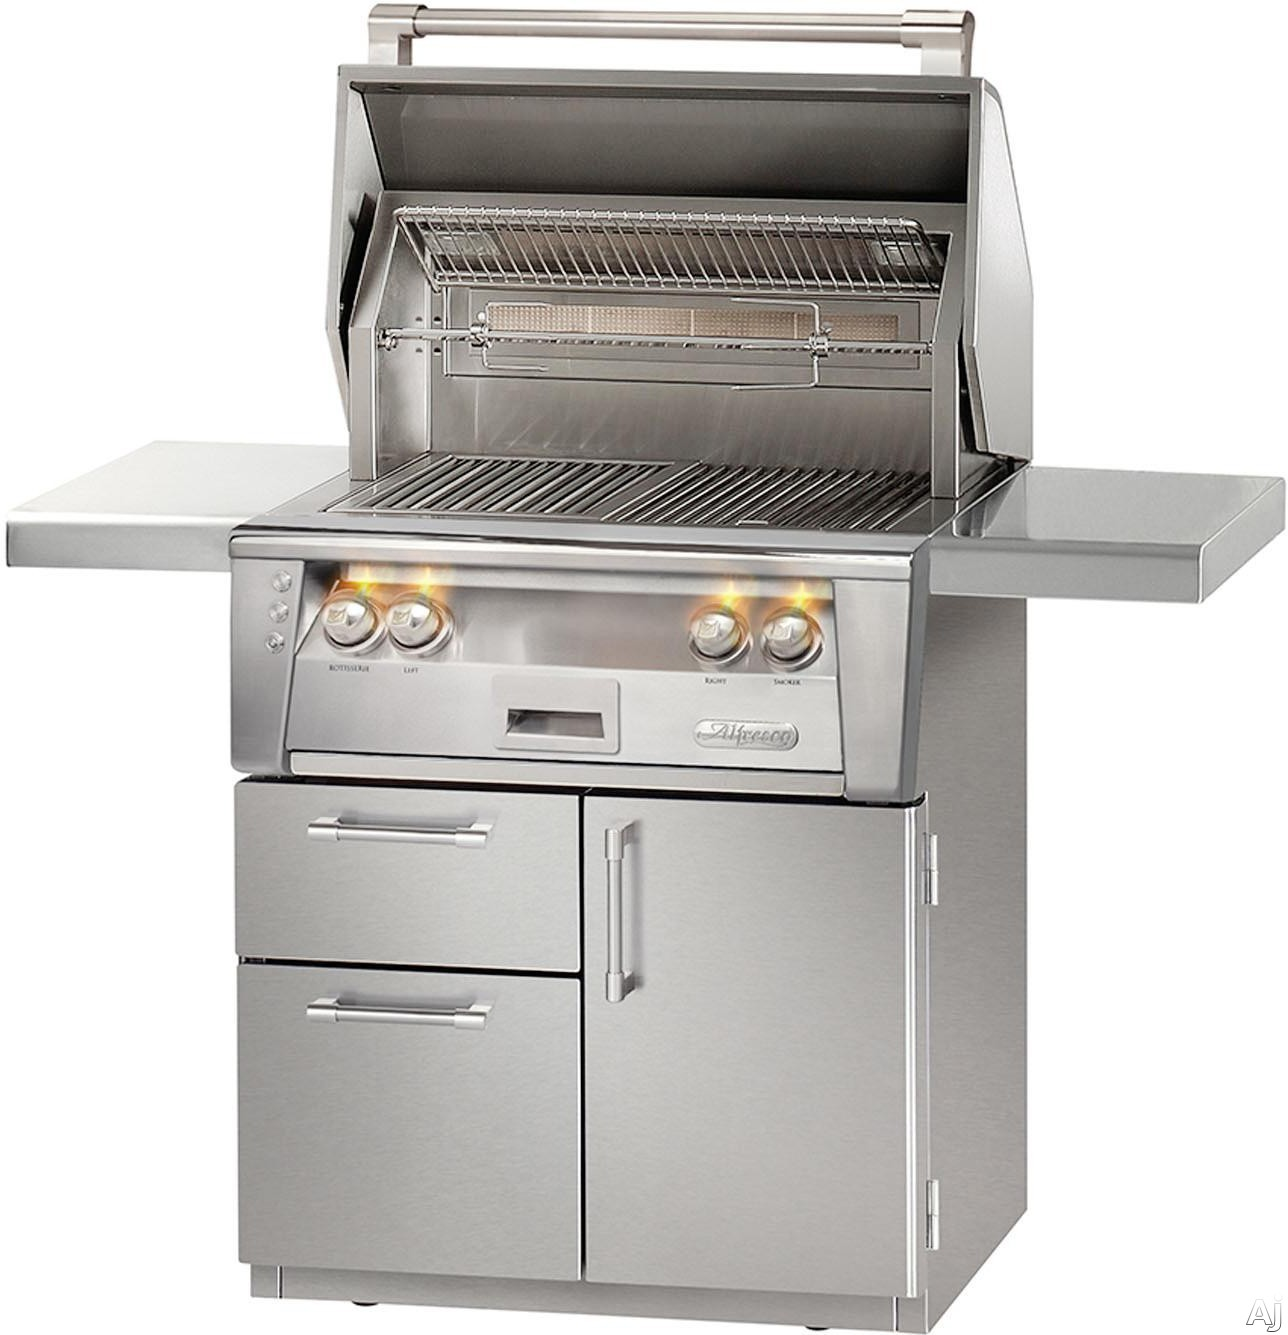 """Alfresco ALXE30SZCDNG 30 Inch Grill with 542 sq. in. Grilling Surface, Two 27,500 BTU Main Burners, Infrared Sear Zoneâ""""¢, Integrated Rotisserie, Smoker and Herb Infuser System, 3-Position Warming Rack, Halogen Lighting and Deluxe Cart: Natural Gas"""